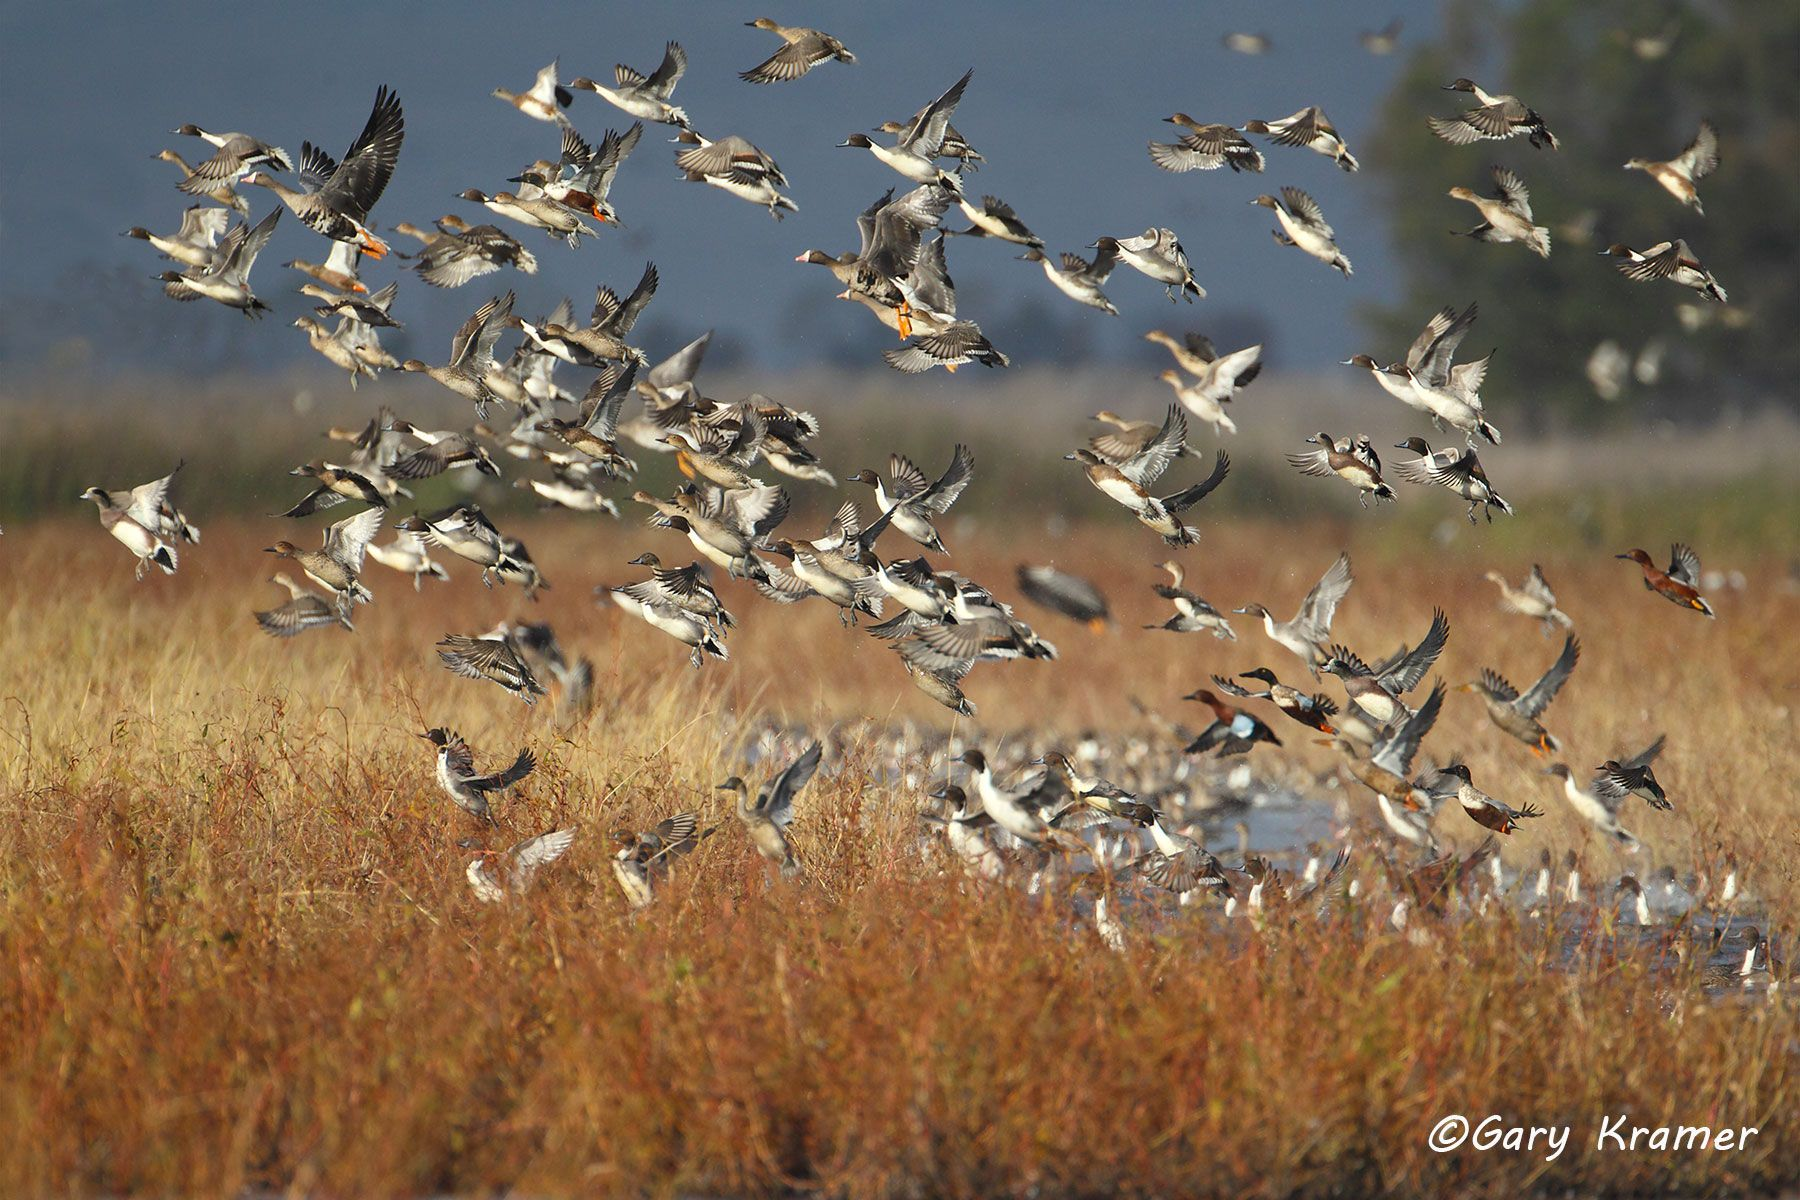 Northern Pintail/American Wigeon/Northern Shoveler/White-fronted Goose/Cinnamon Teal/Green-winged Teal - NBWX#727d